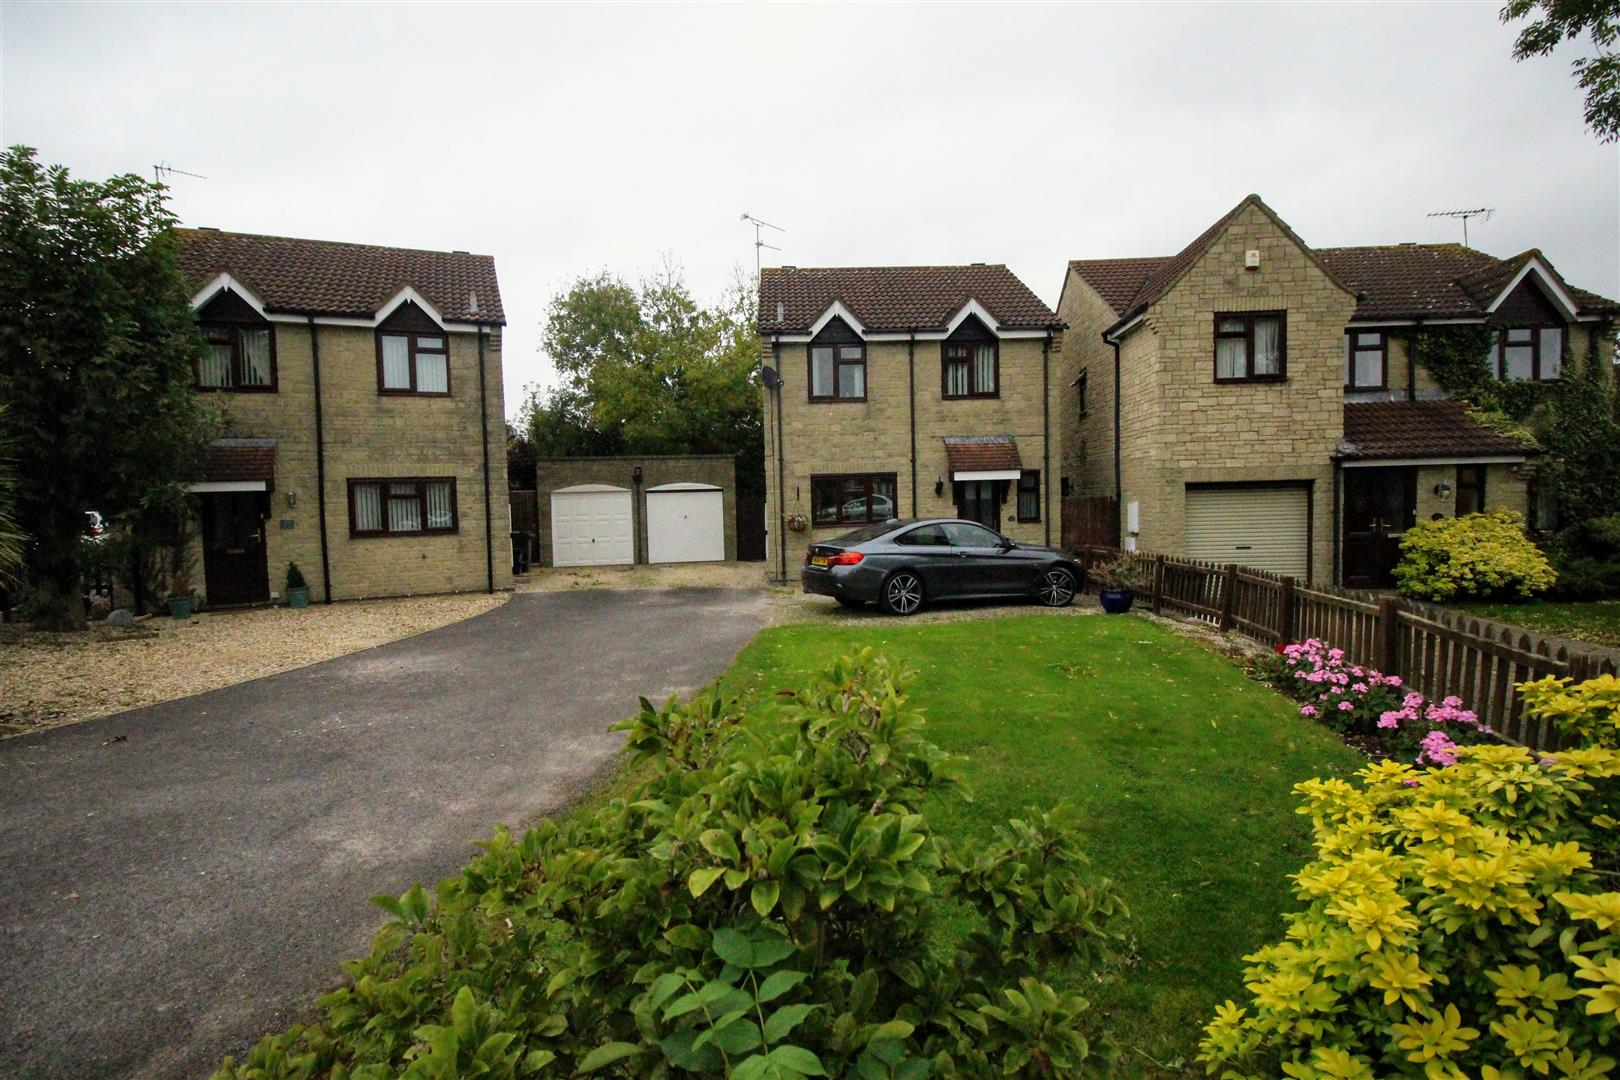 3 Bedrooms Detached House for sale in Melfort Close, Sparcells, Swindon